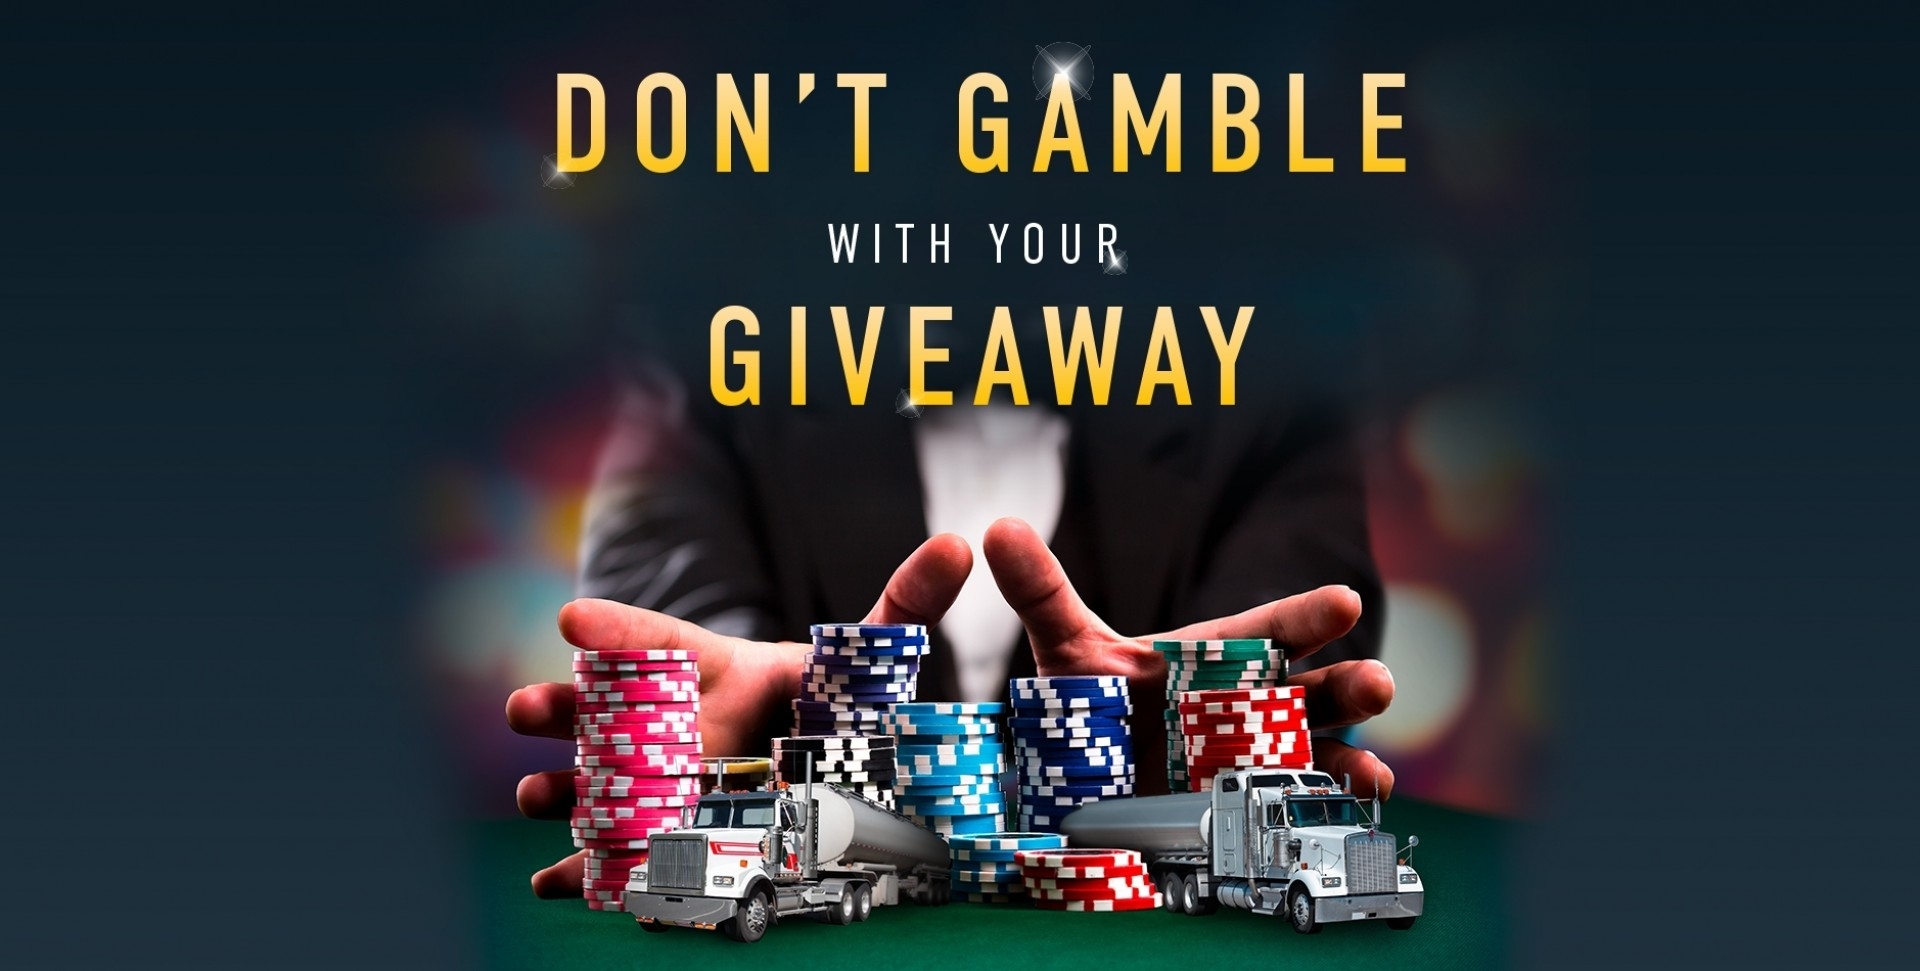 Dont gamble